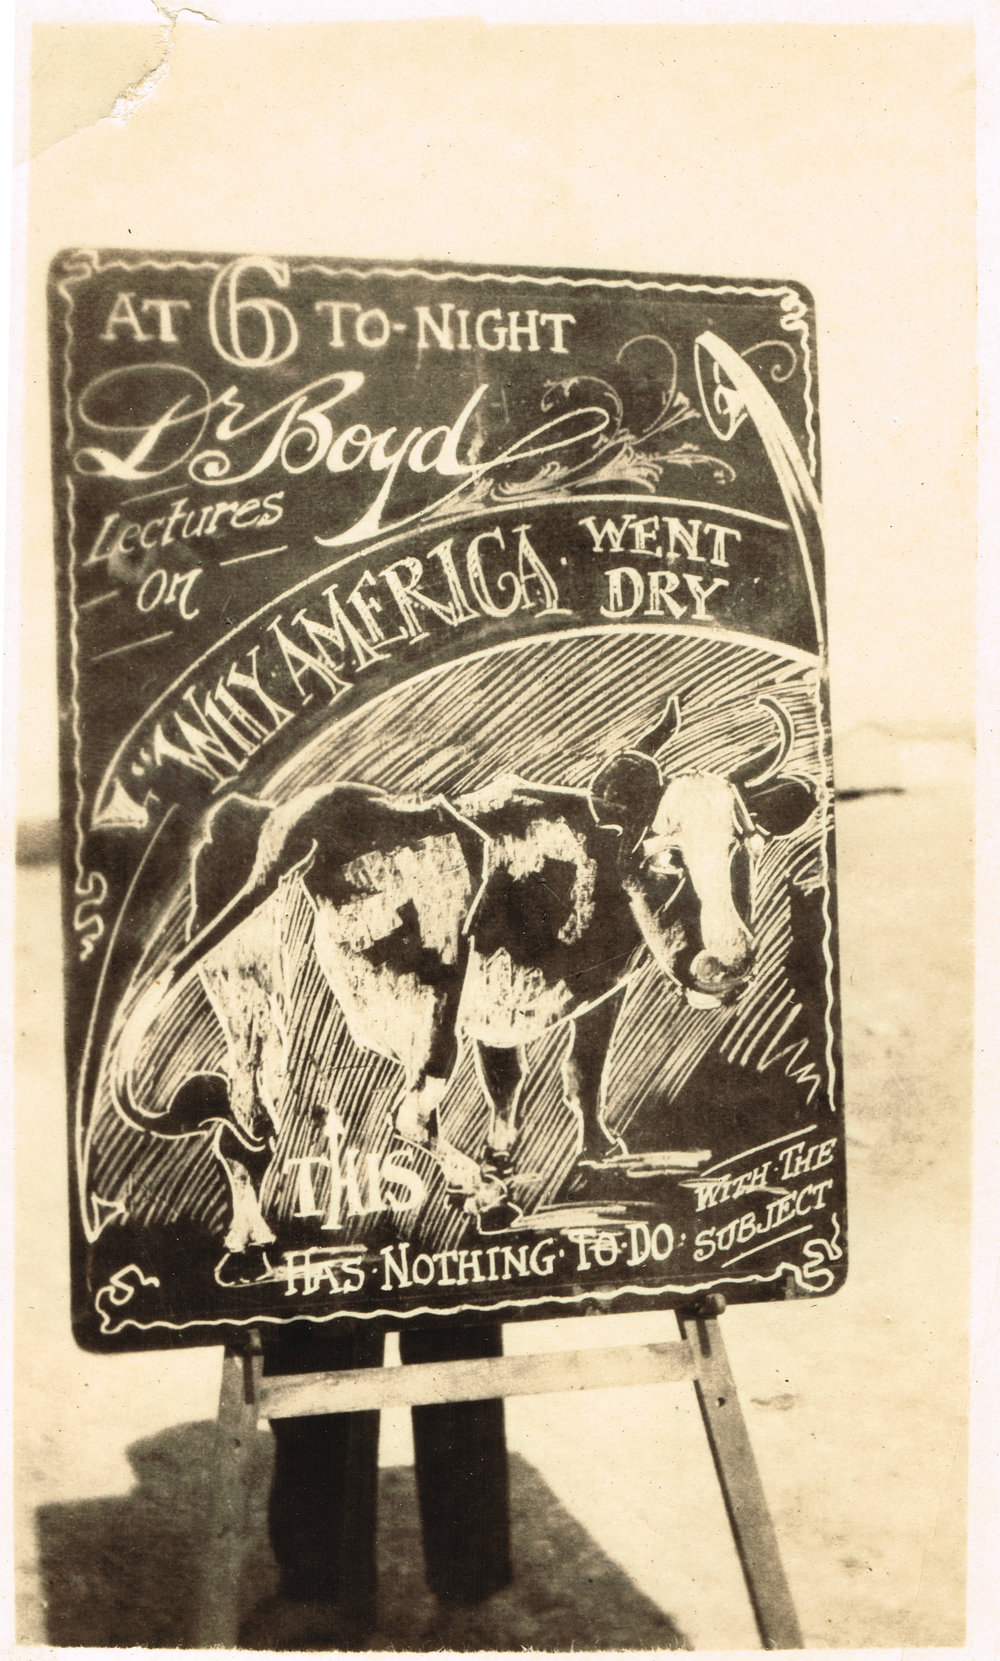 "Reg's chalkboard advertising Dr Boyd's lecture on Why America Went Dry. The whimsical cows, Reg says, have ""nothing to do with the subject""."